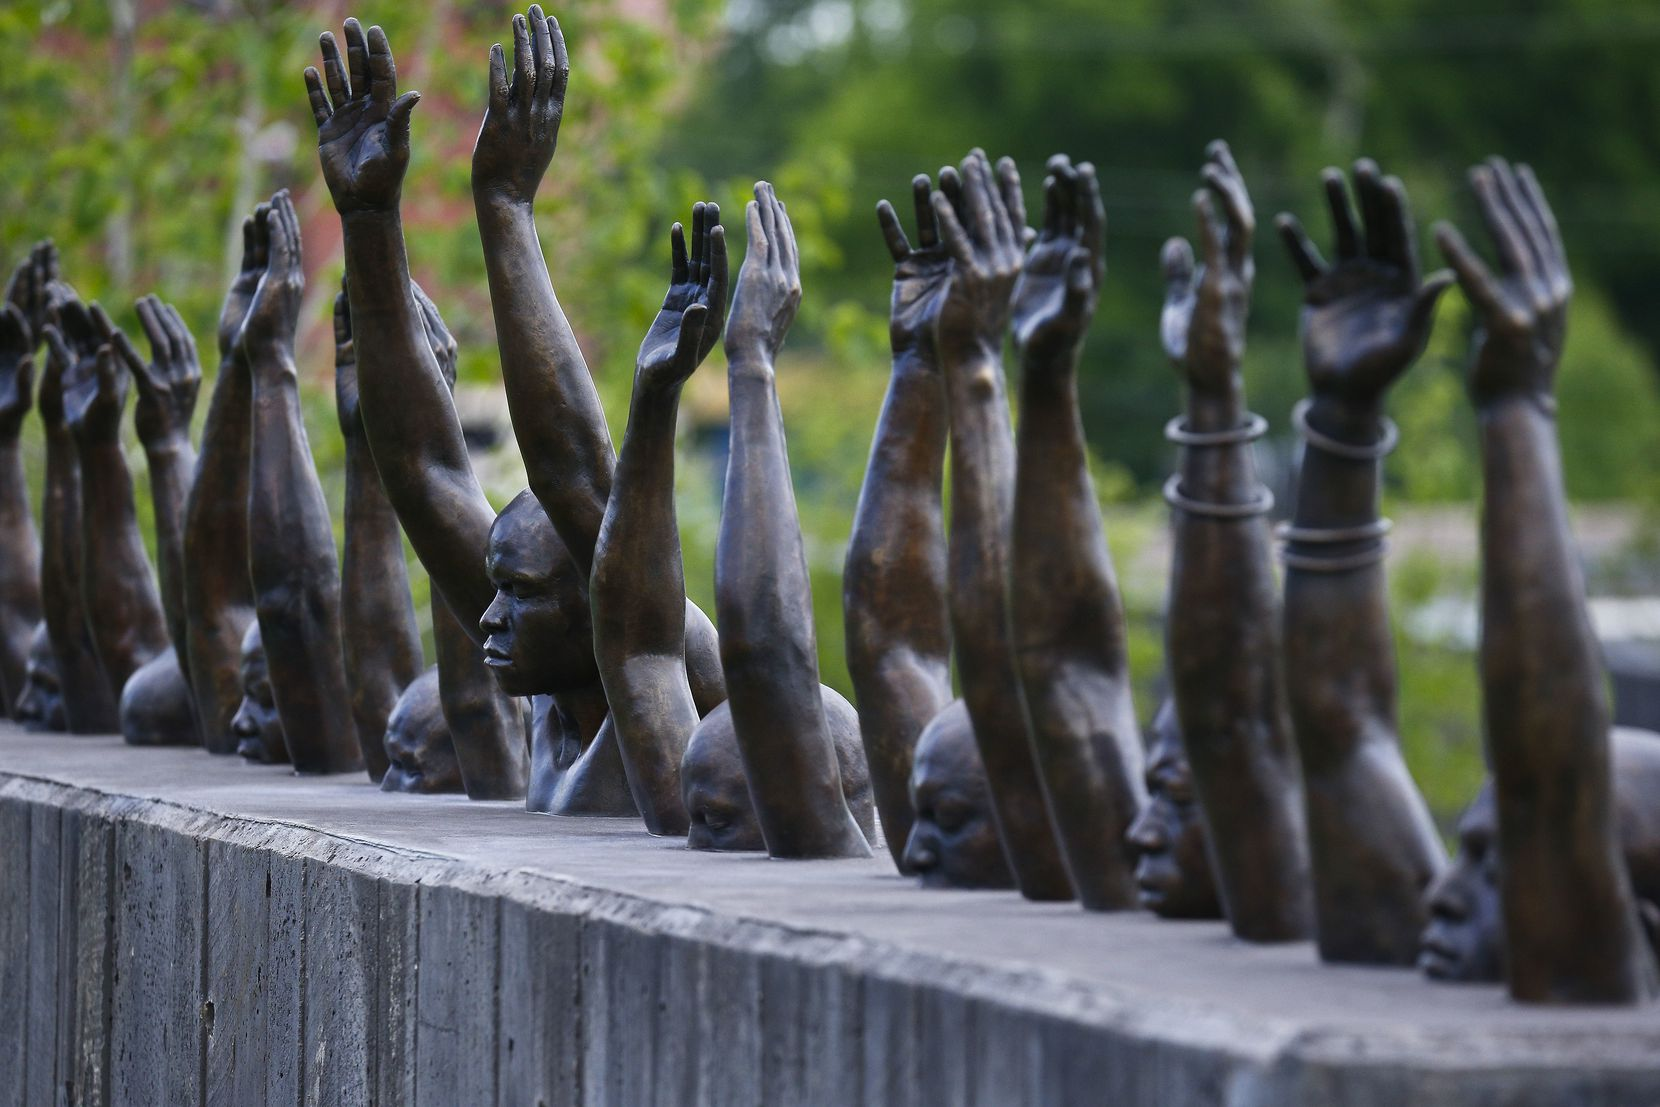 The bronze sculpture Raise Up by Hank Willis Thomas addresses police violence against African-Americans.